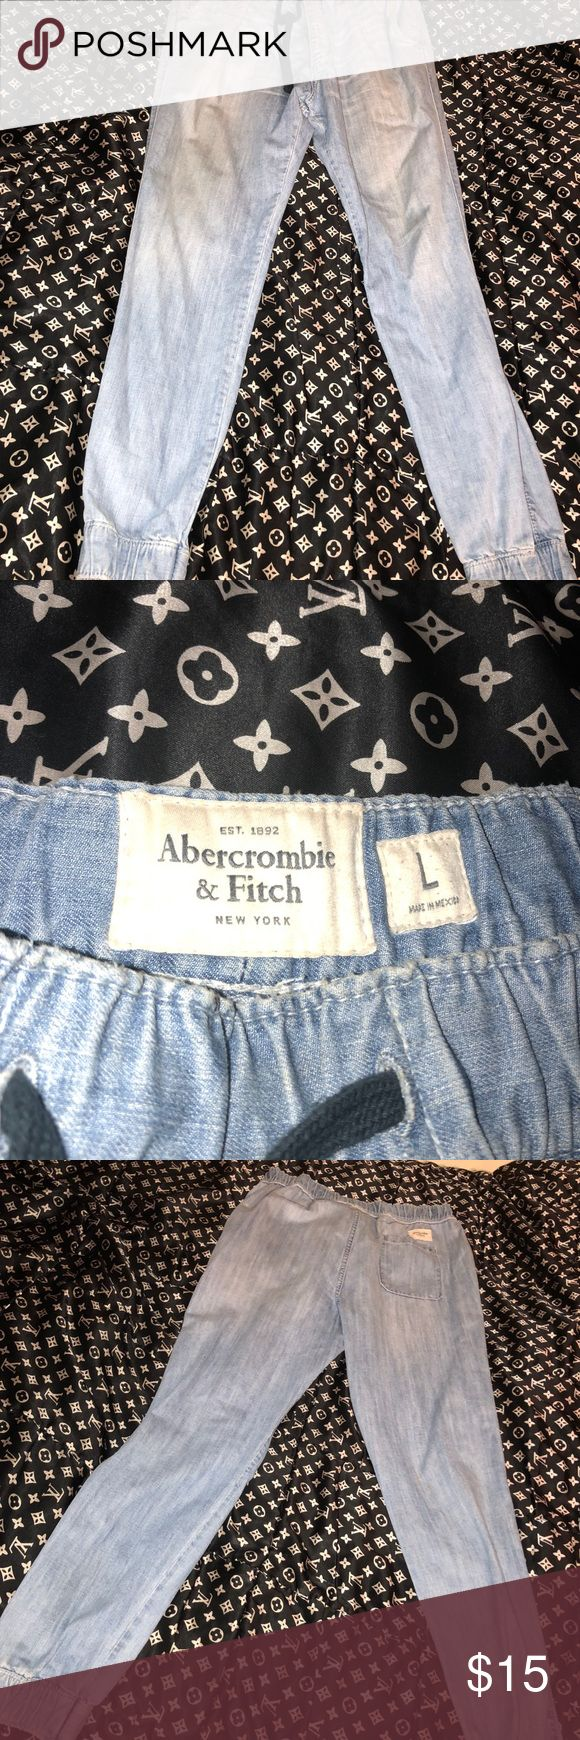 MENS A&F LARGE DENIM JOGGERS MENS A&F DENIM JOGGERS                                                   SIZE: LARGE.                                                                                   CONDITION: 9.5/10 Abercrombie & Fitch Jeans Skinny